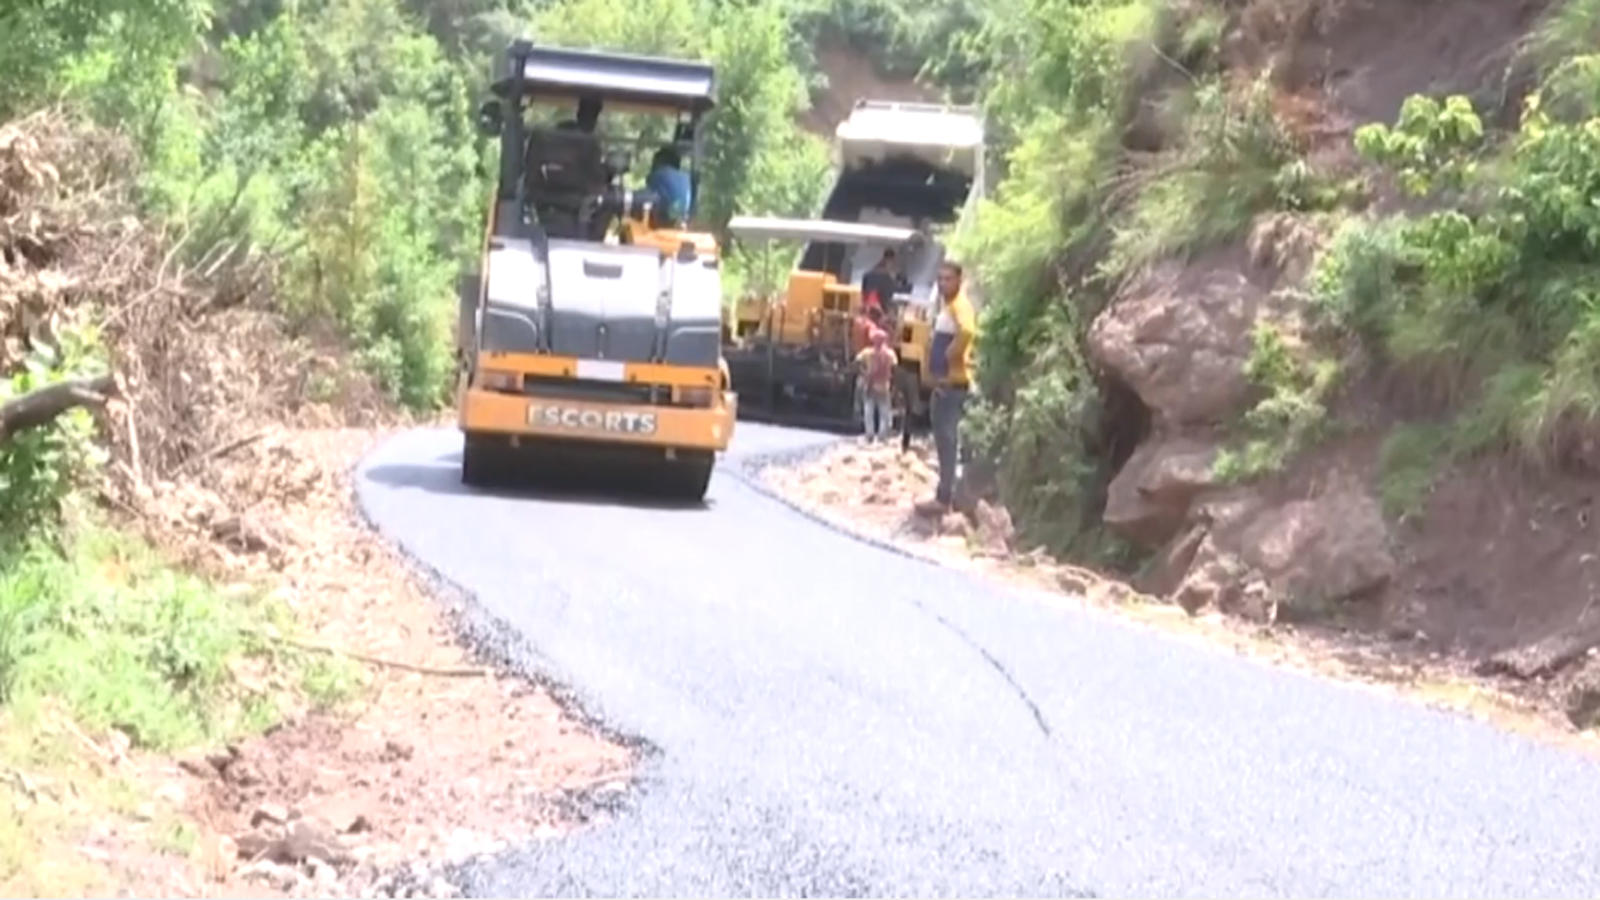 jk-10-km-road-stretch-to-benefit-residents-of-border-villages